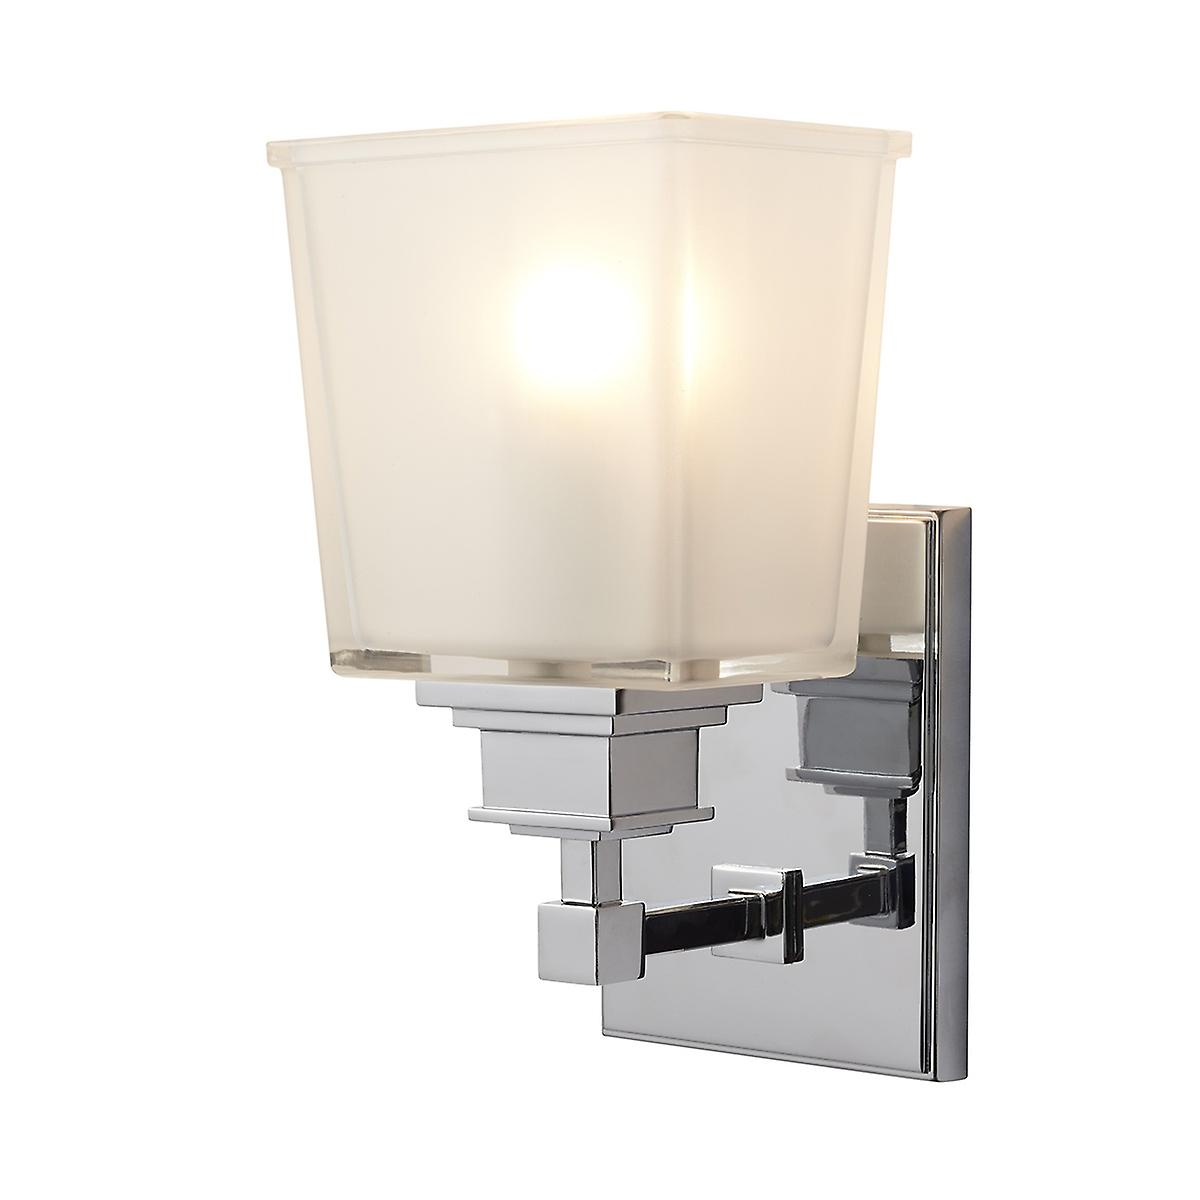 Elstead BATH/AY1 Aylesbury Modern Bathroom Wall Light with a Rectangle Design